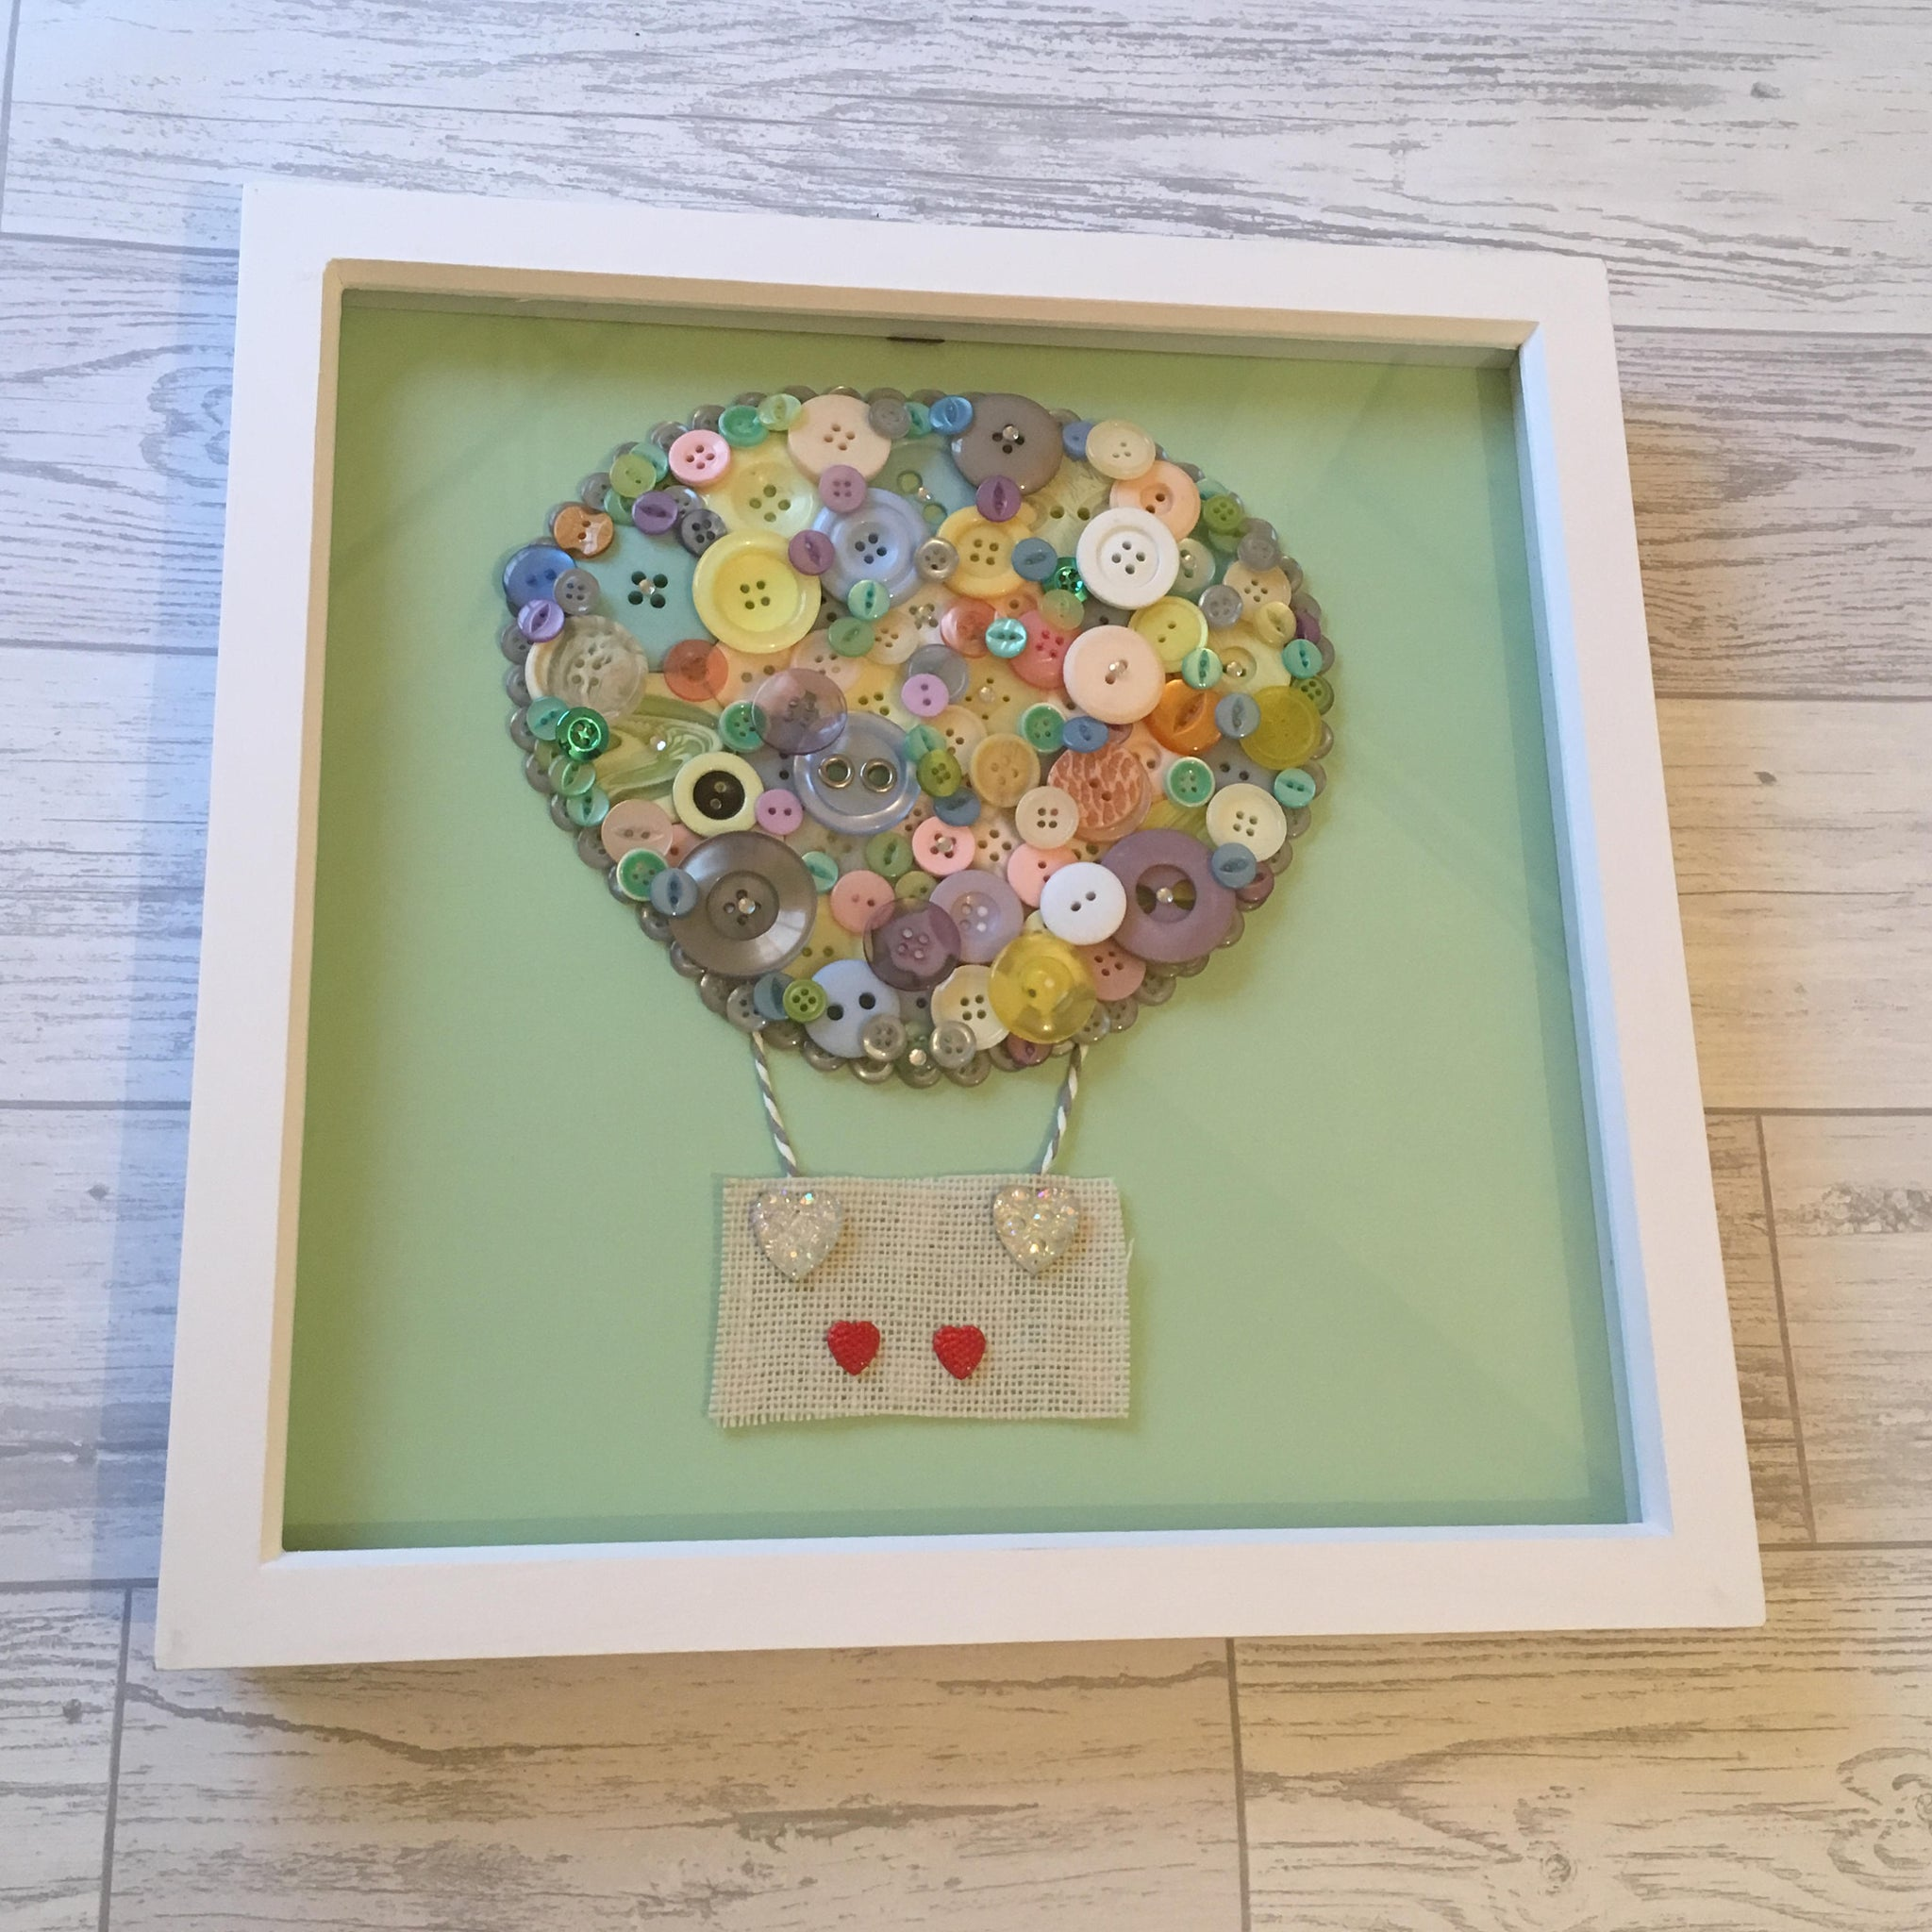 Hot Air Balloon Button Art Frame